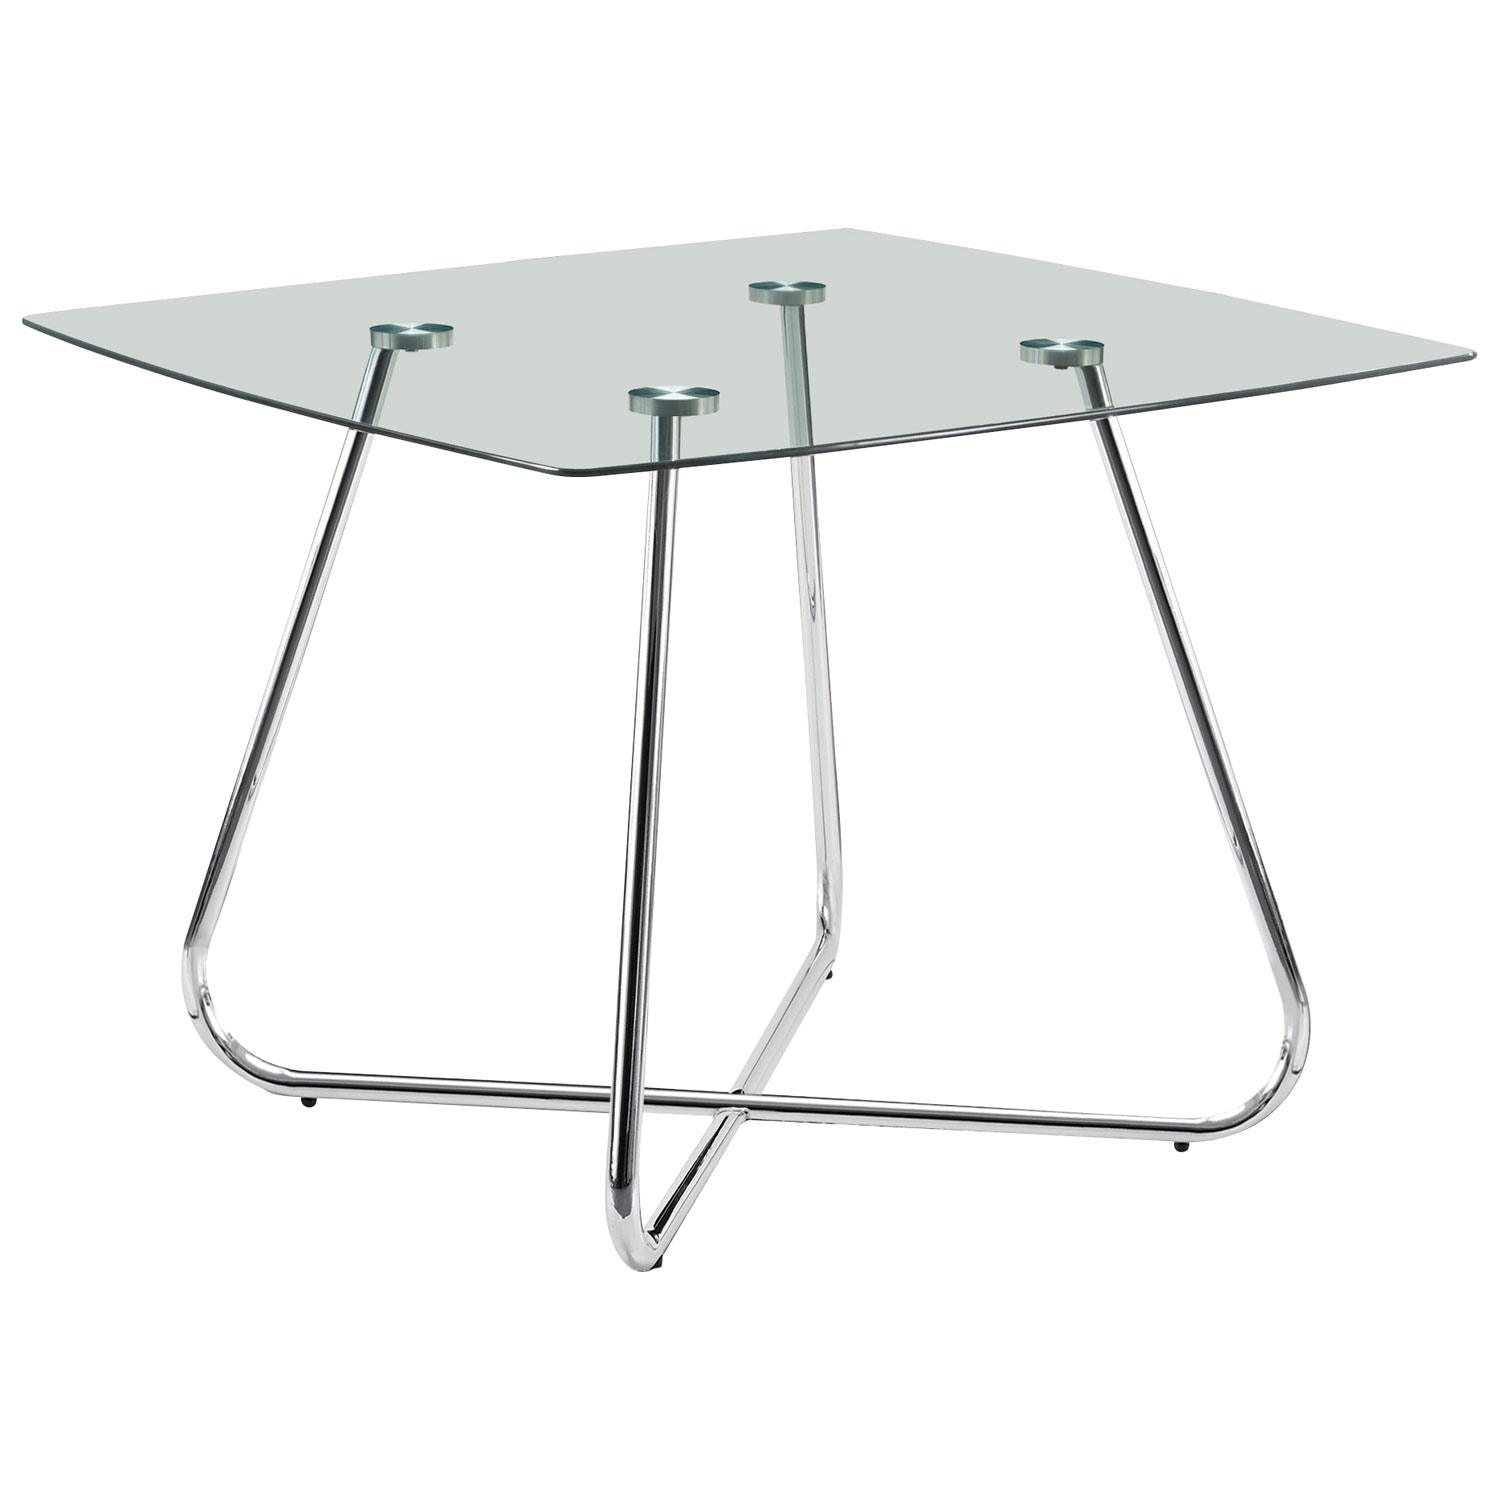 Contemporary 4 Seating Square Casual Dining Table Chrome